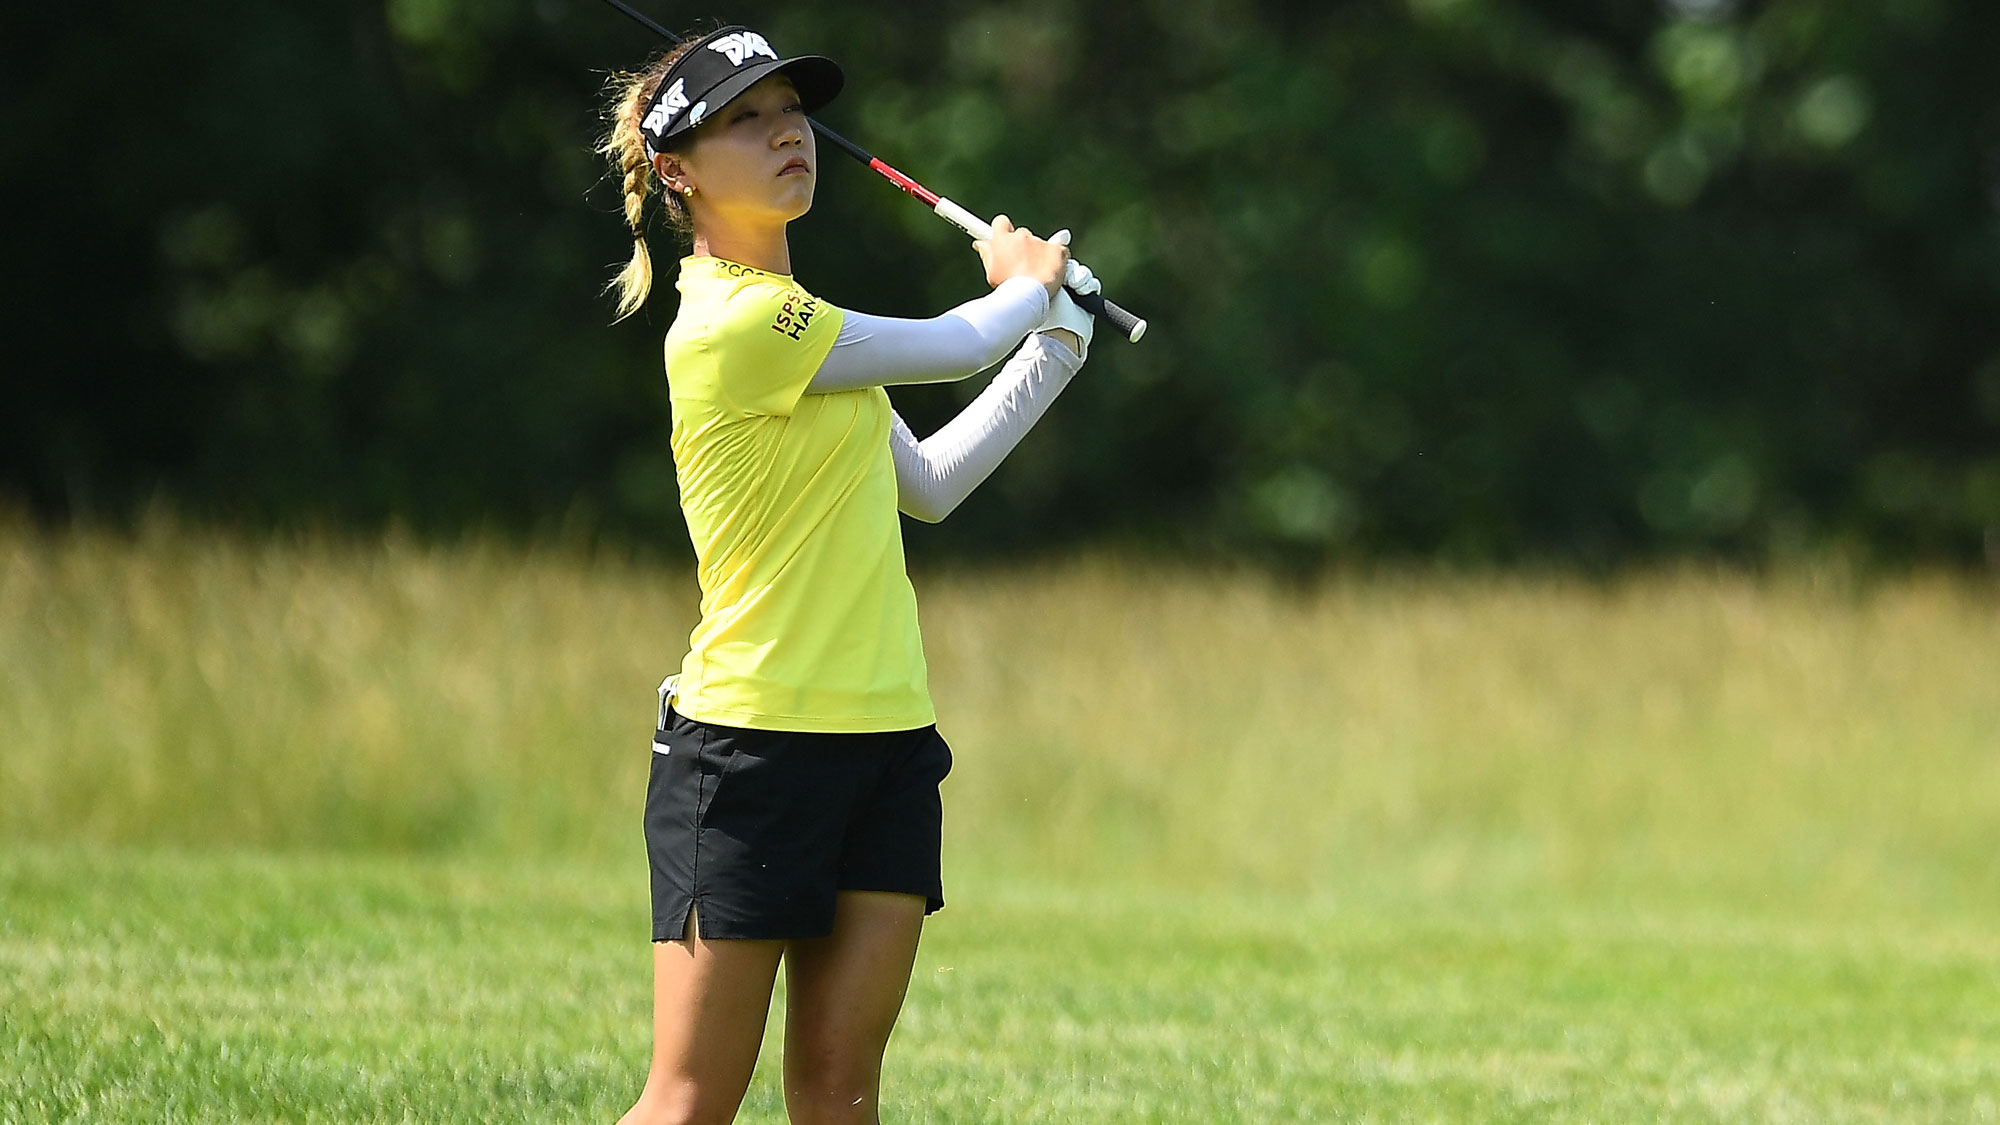 Lydia Ko on Sunday at the Meijer LPGA Classic